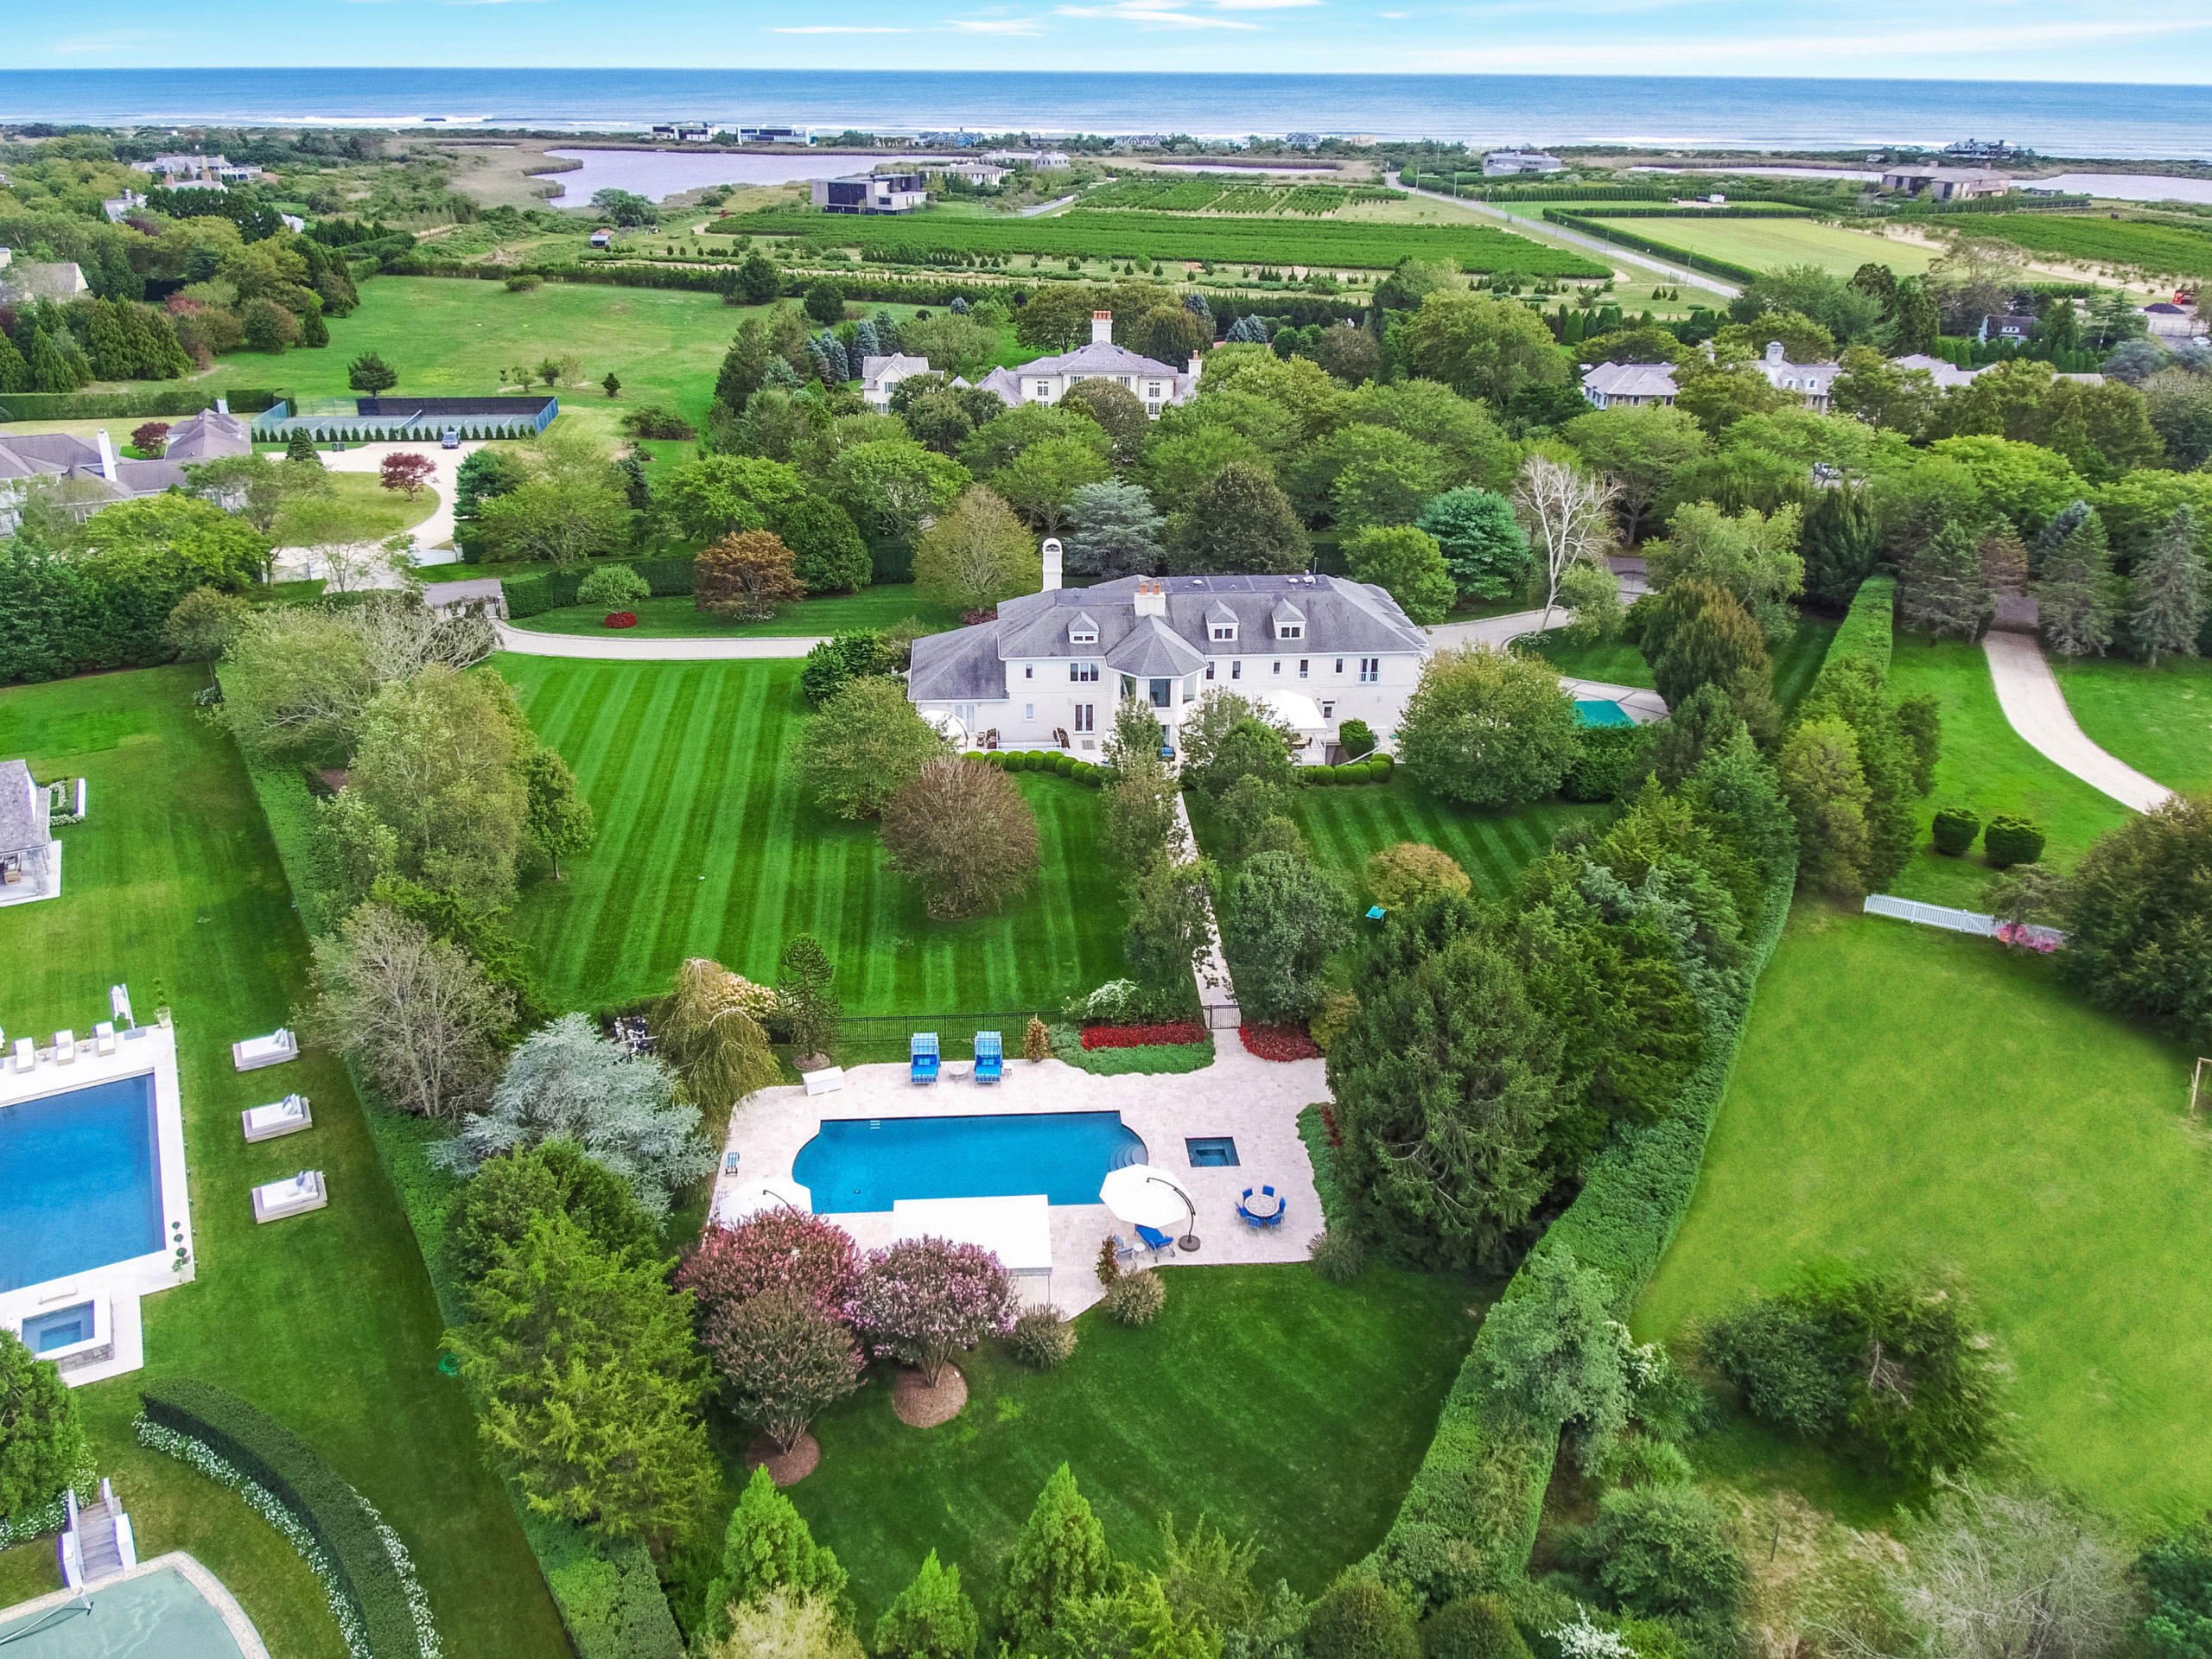 Recently sold for $9.45 million at 21 Fordune Drive in Southampton.